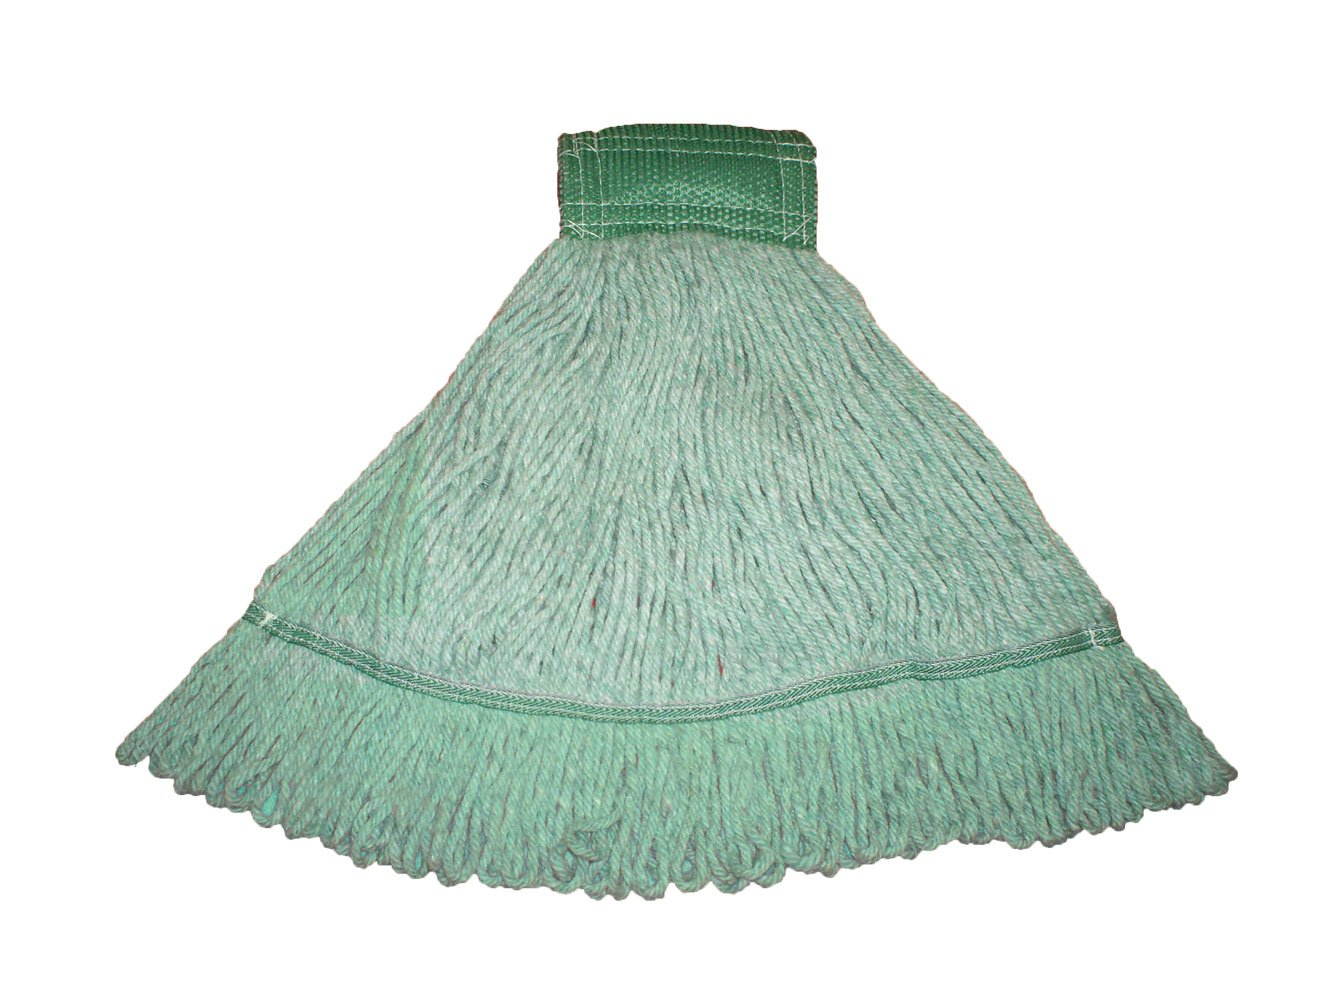 Royce Rolls Premium Loop Mop Small-Size Health Care Blend Preshrunk - Green #5500 Series